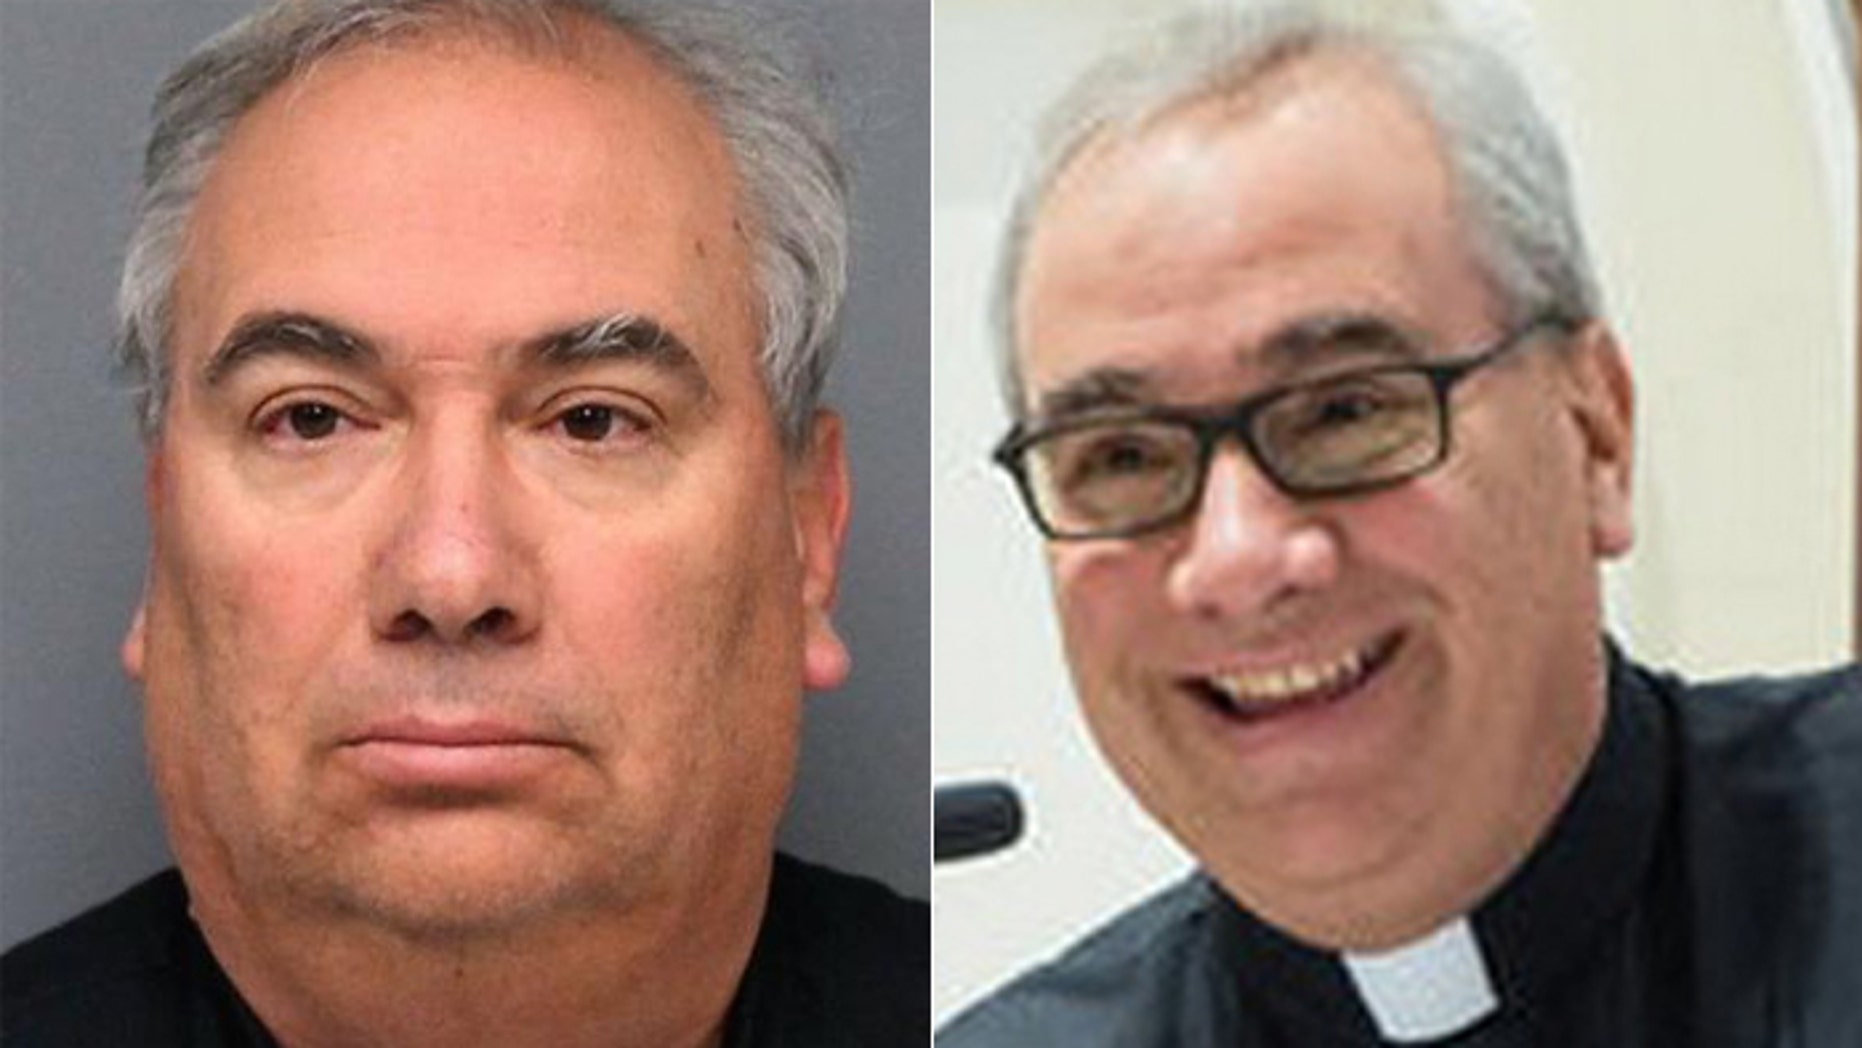 The Rev. Kevin Carter in his Little Ferry Police Department mugshot, and in a happier time, sporting his clerical collar.